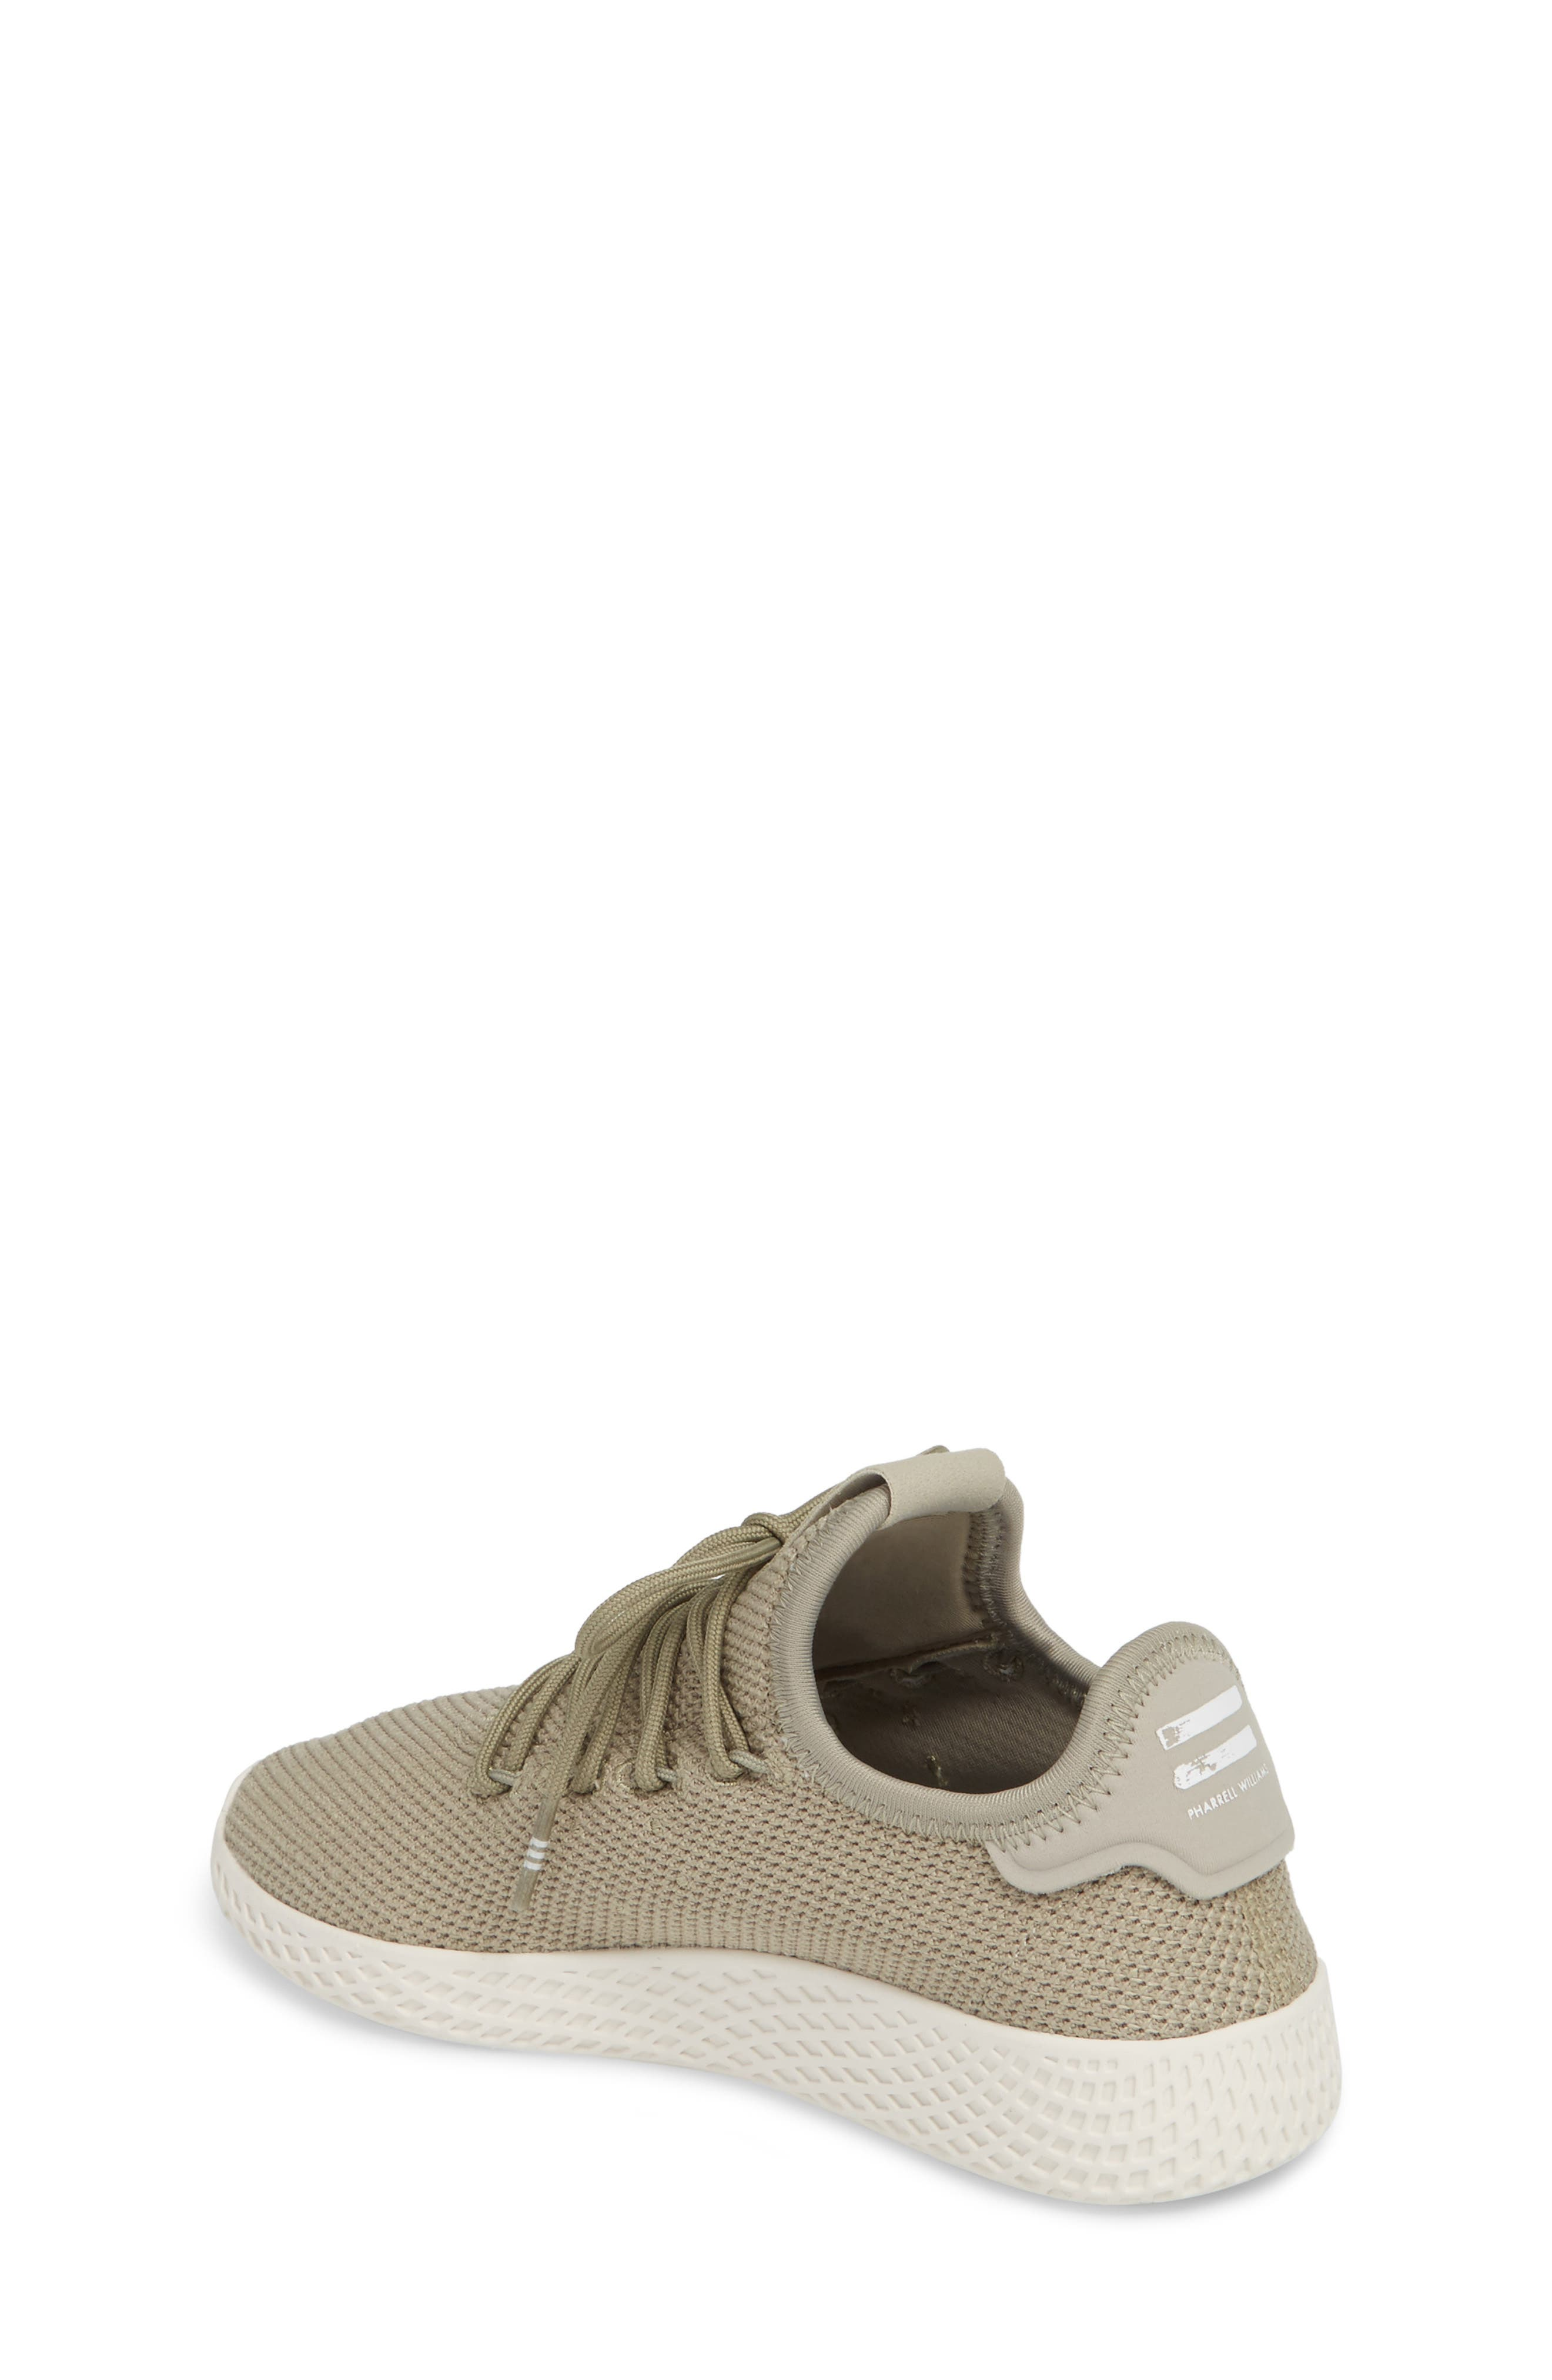 Pharrell Williams Tennis Hu Sock Sneaker,                             Alternate thumbnail 2, color,                             Tech Beige/ Chalk White